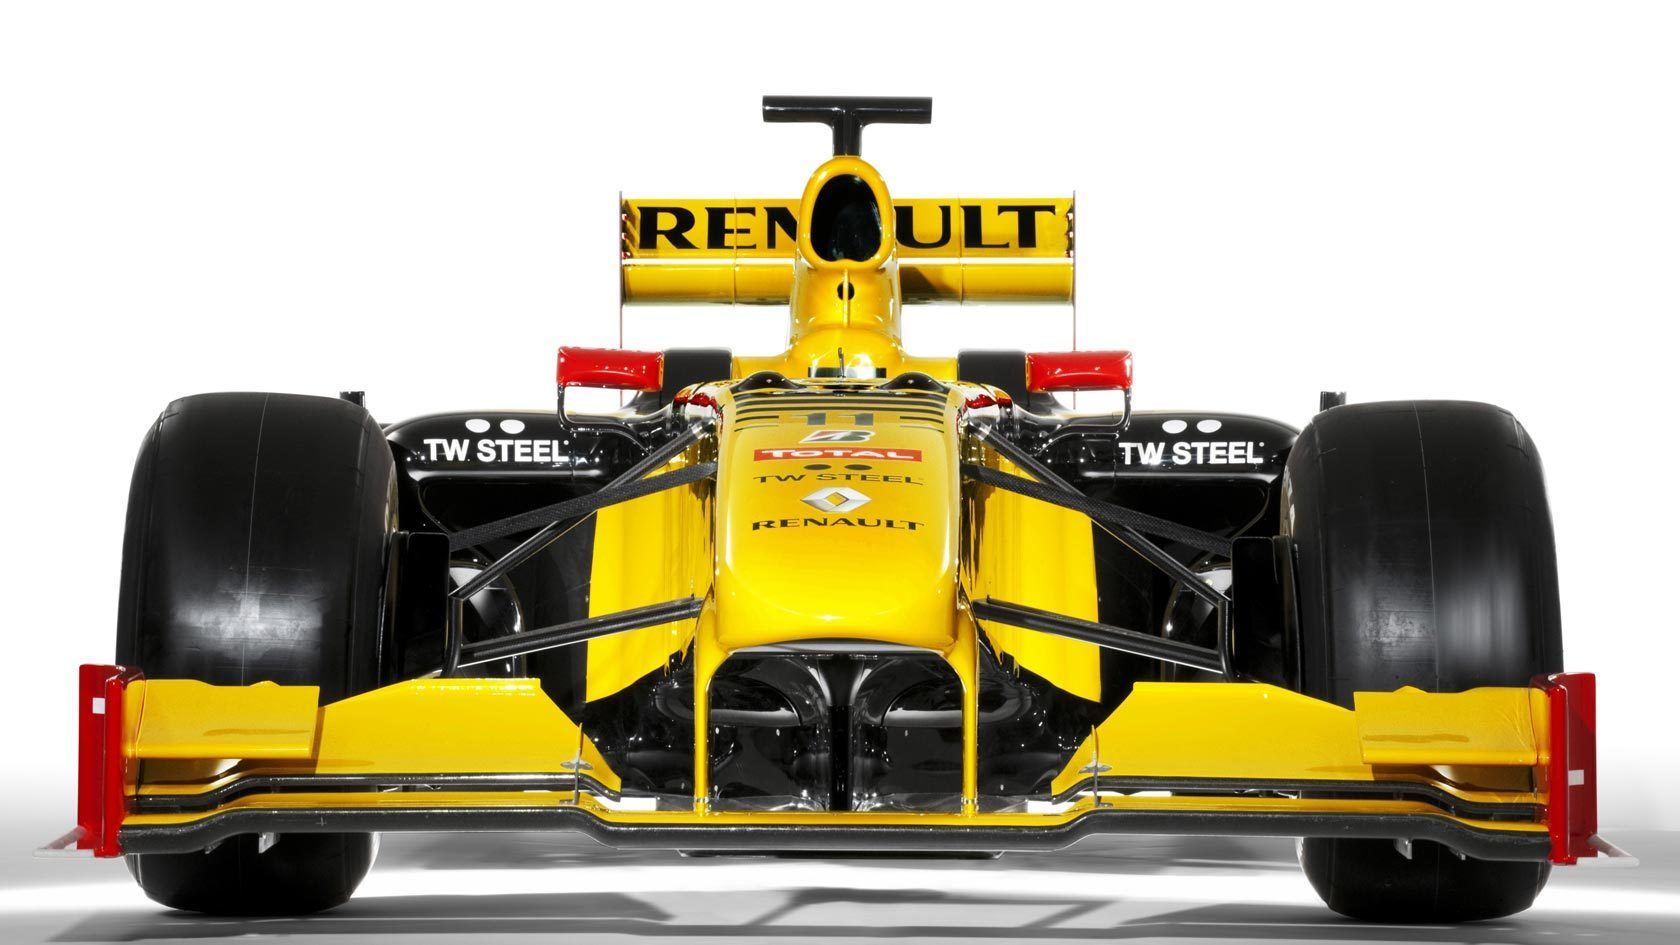 renault f1 team images renault r30 hd wallpaper and background photos 11034154. Black Bedroom Furniture Sets. Home Design Ideas